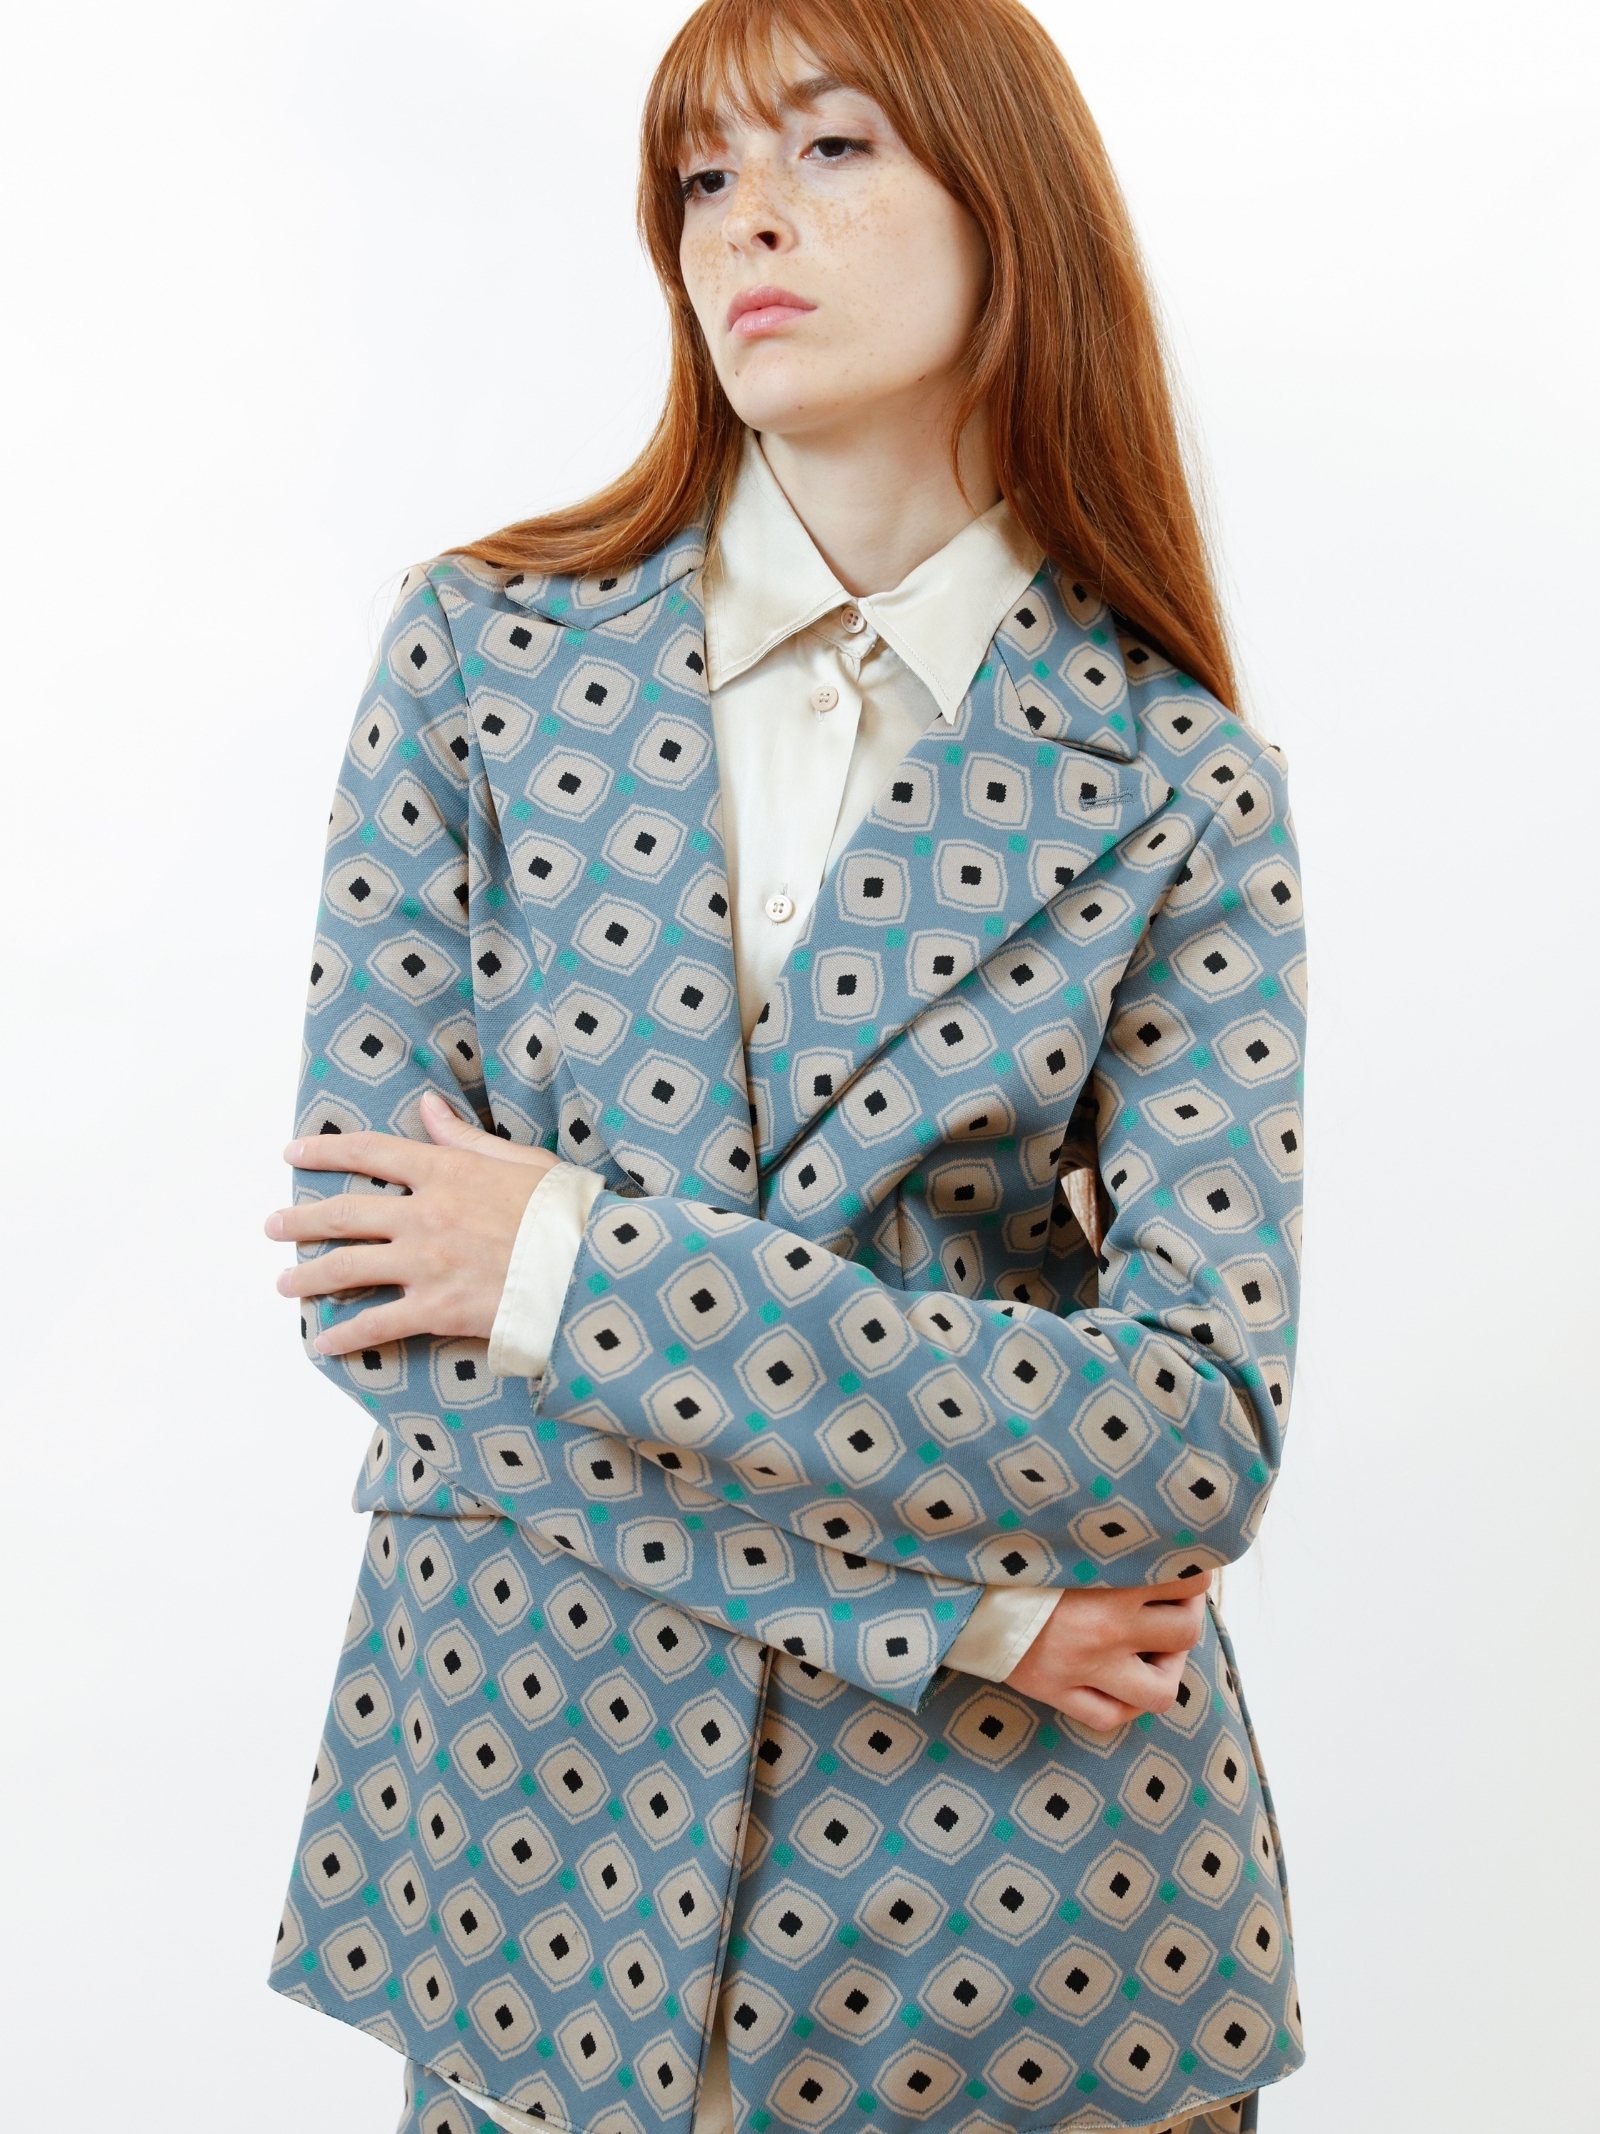 Women's Clothing Archizoom Single-breasted Jacket in Jacquard Stretch Sky Patterned Maliparmi   Jackets   JD638060050C6050